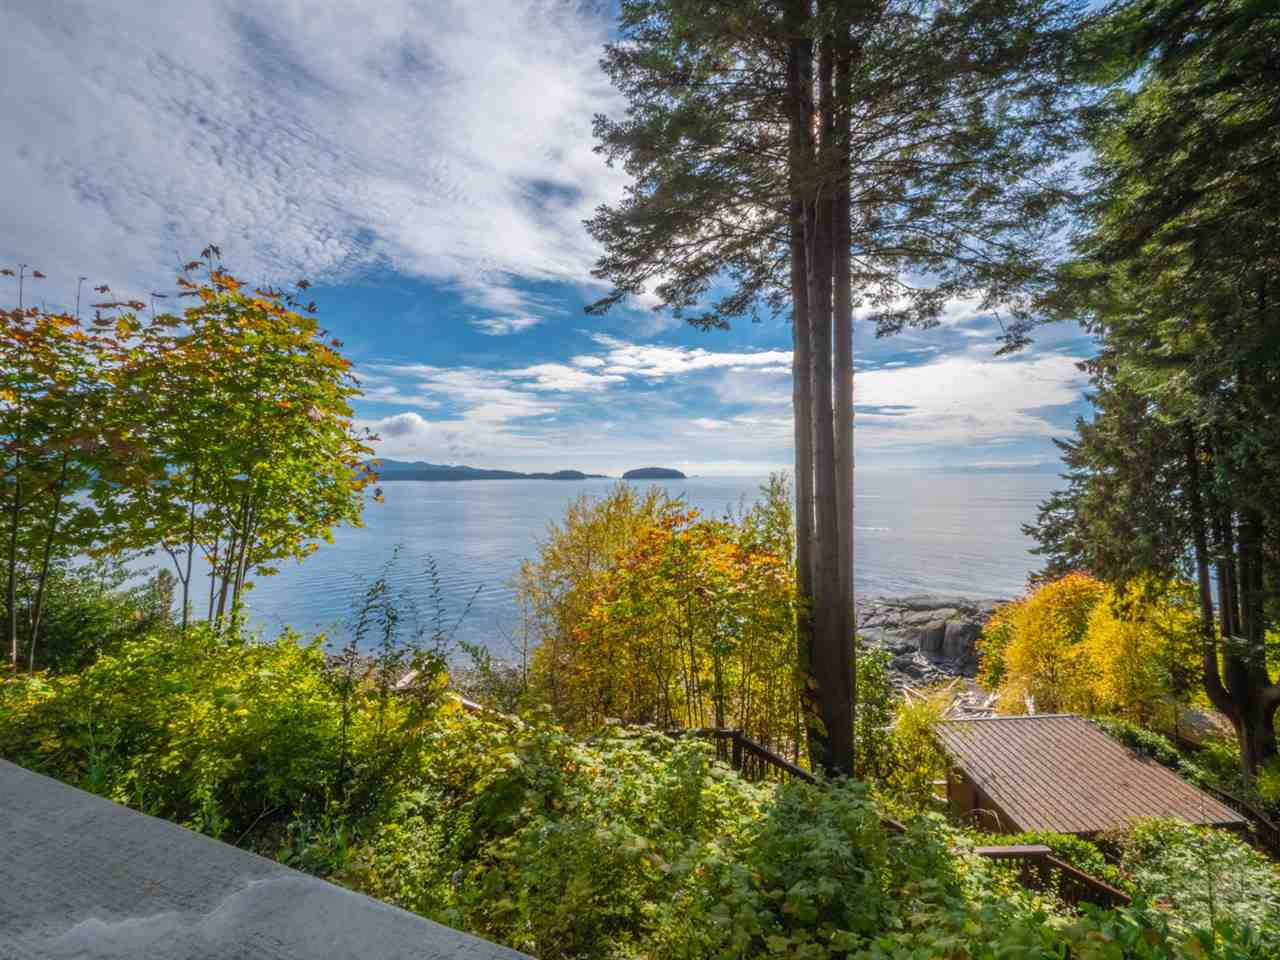 Photo 5: Photos: 877 GOWER POINT Road in Gibsons: Gibsons & Area House for sale (Sunshine Coast)  : MLS®# R2419918